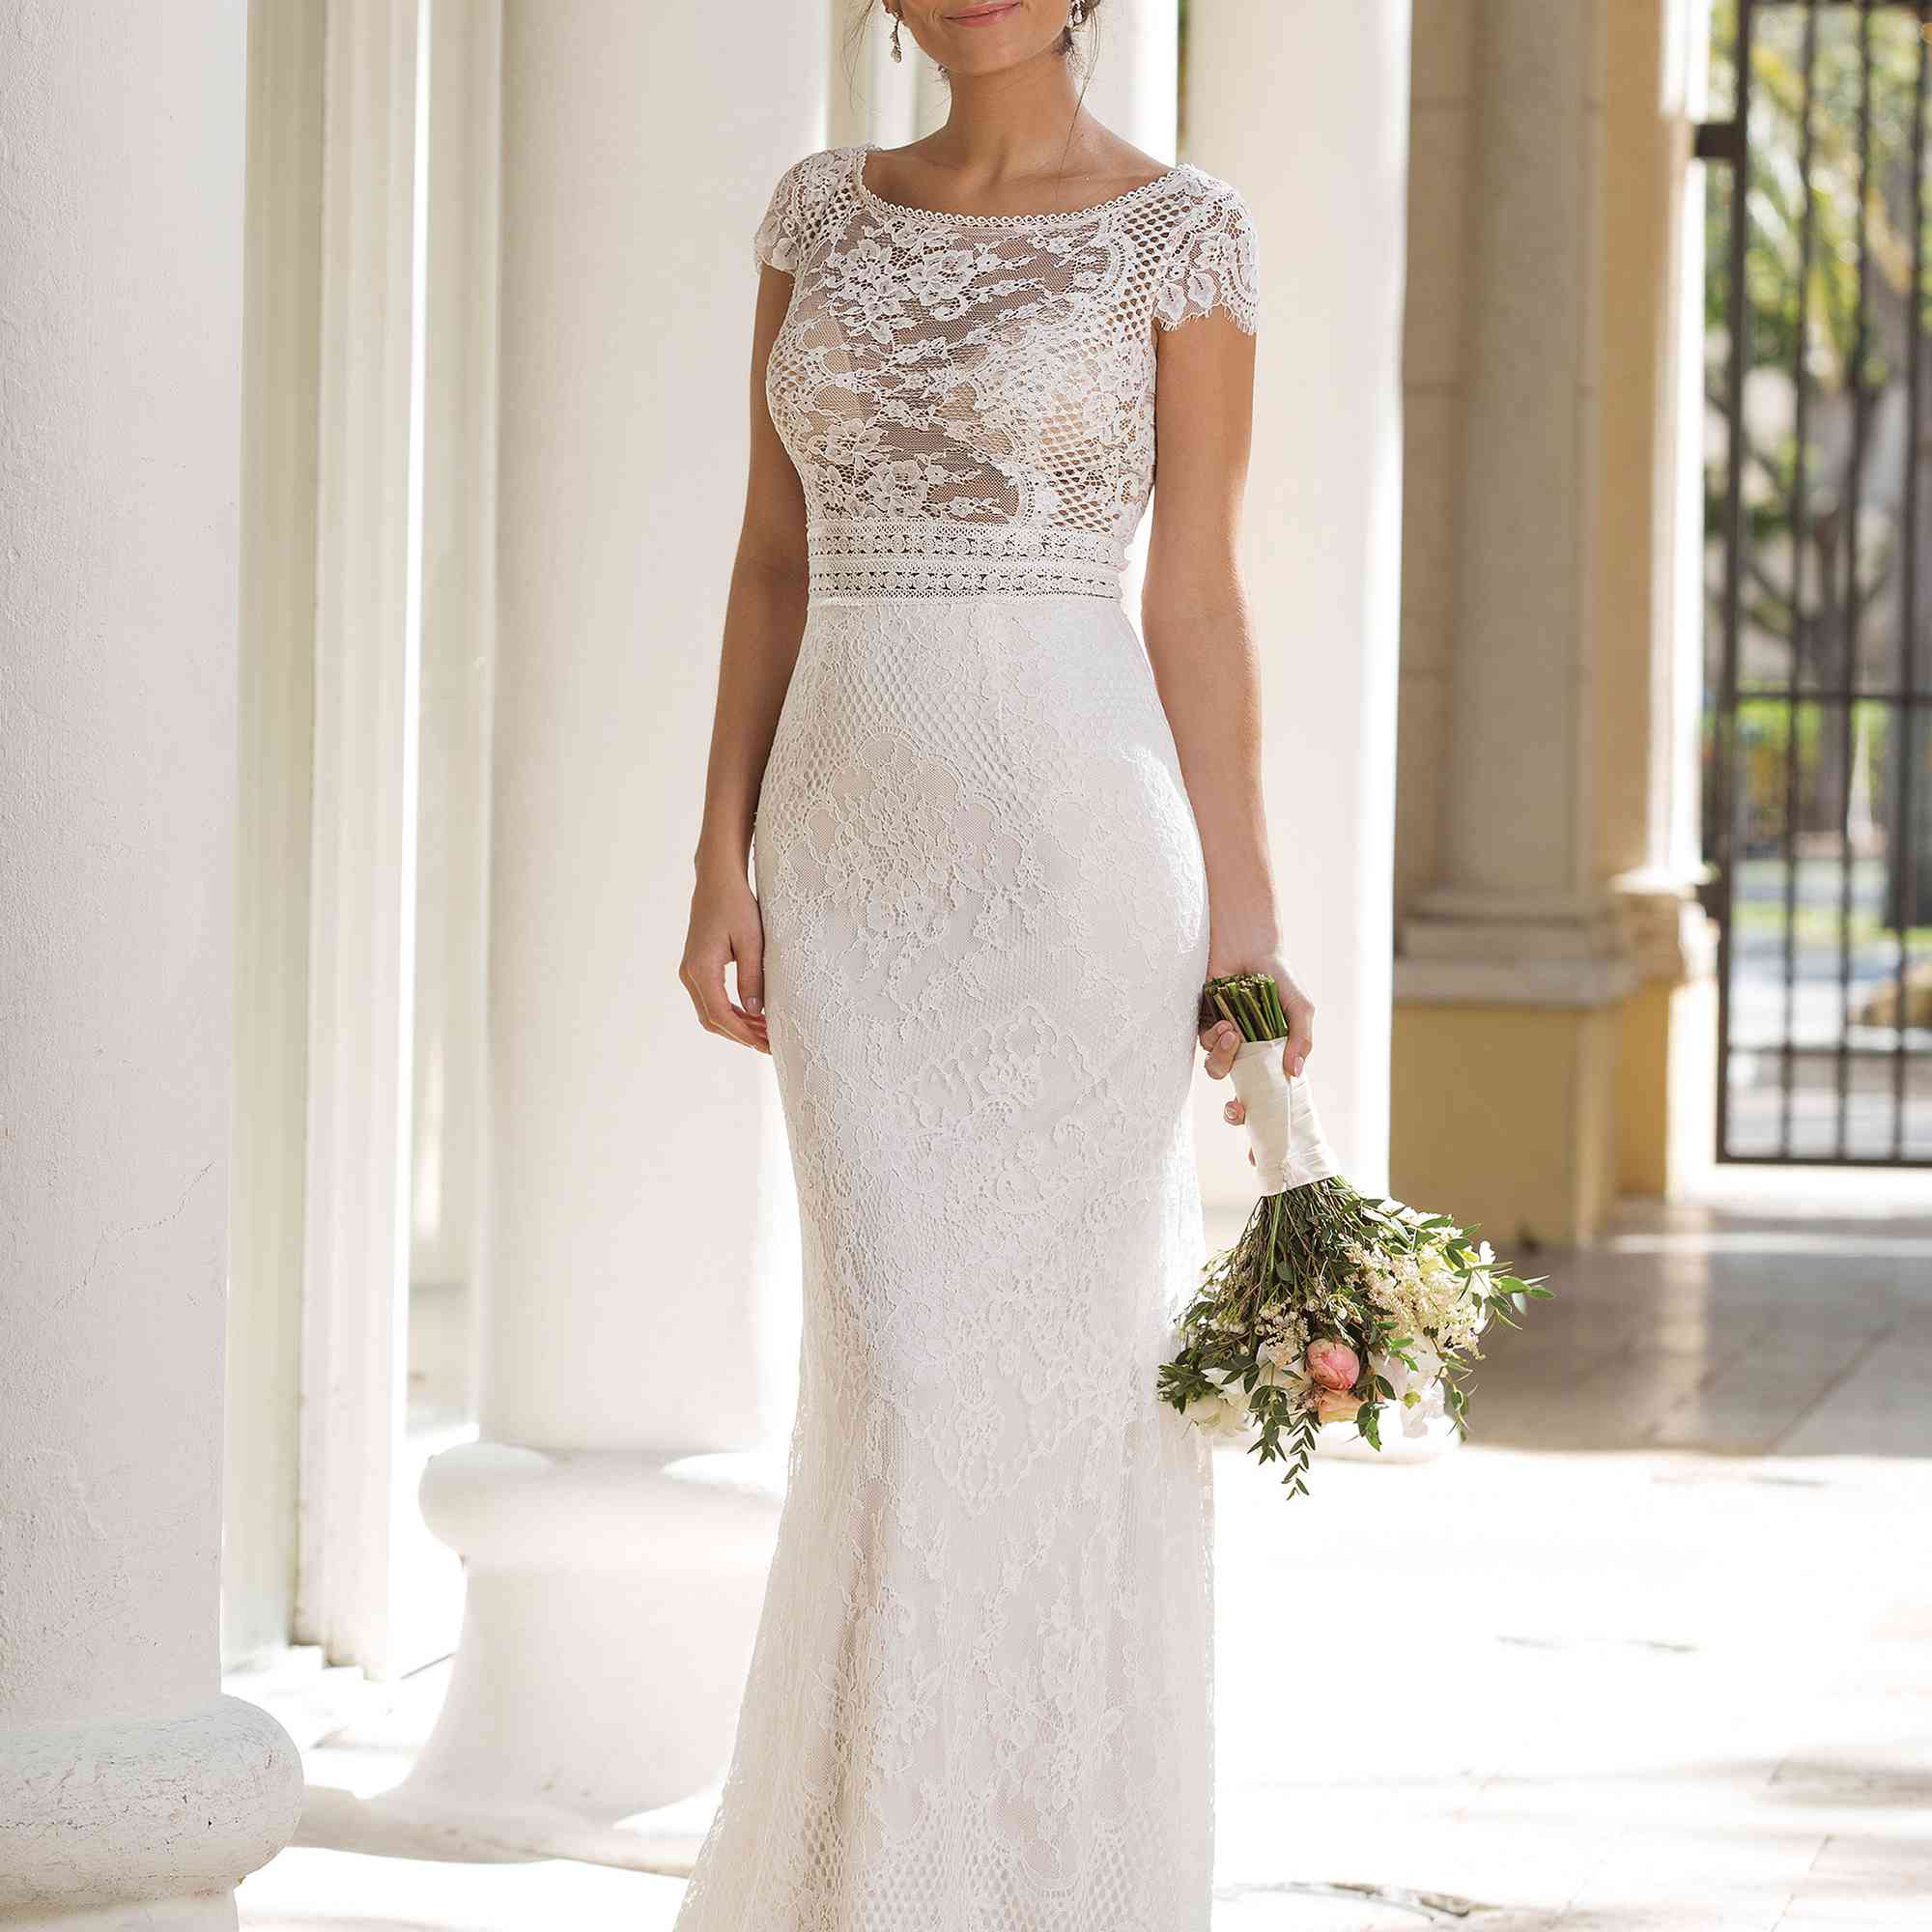 Model in illusion bodice gown with allover lace